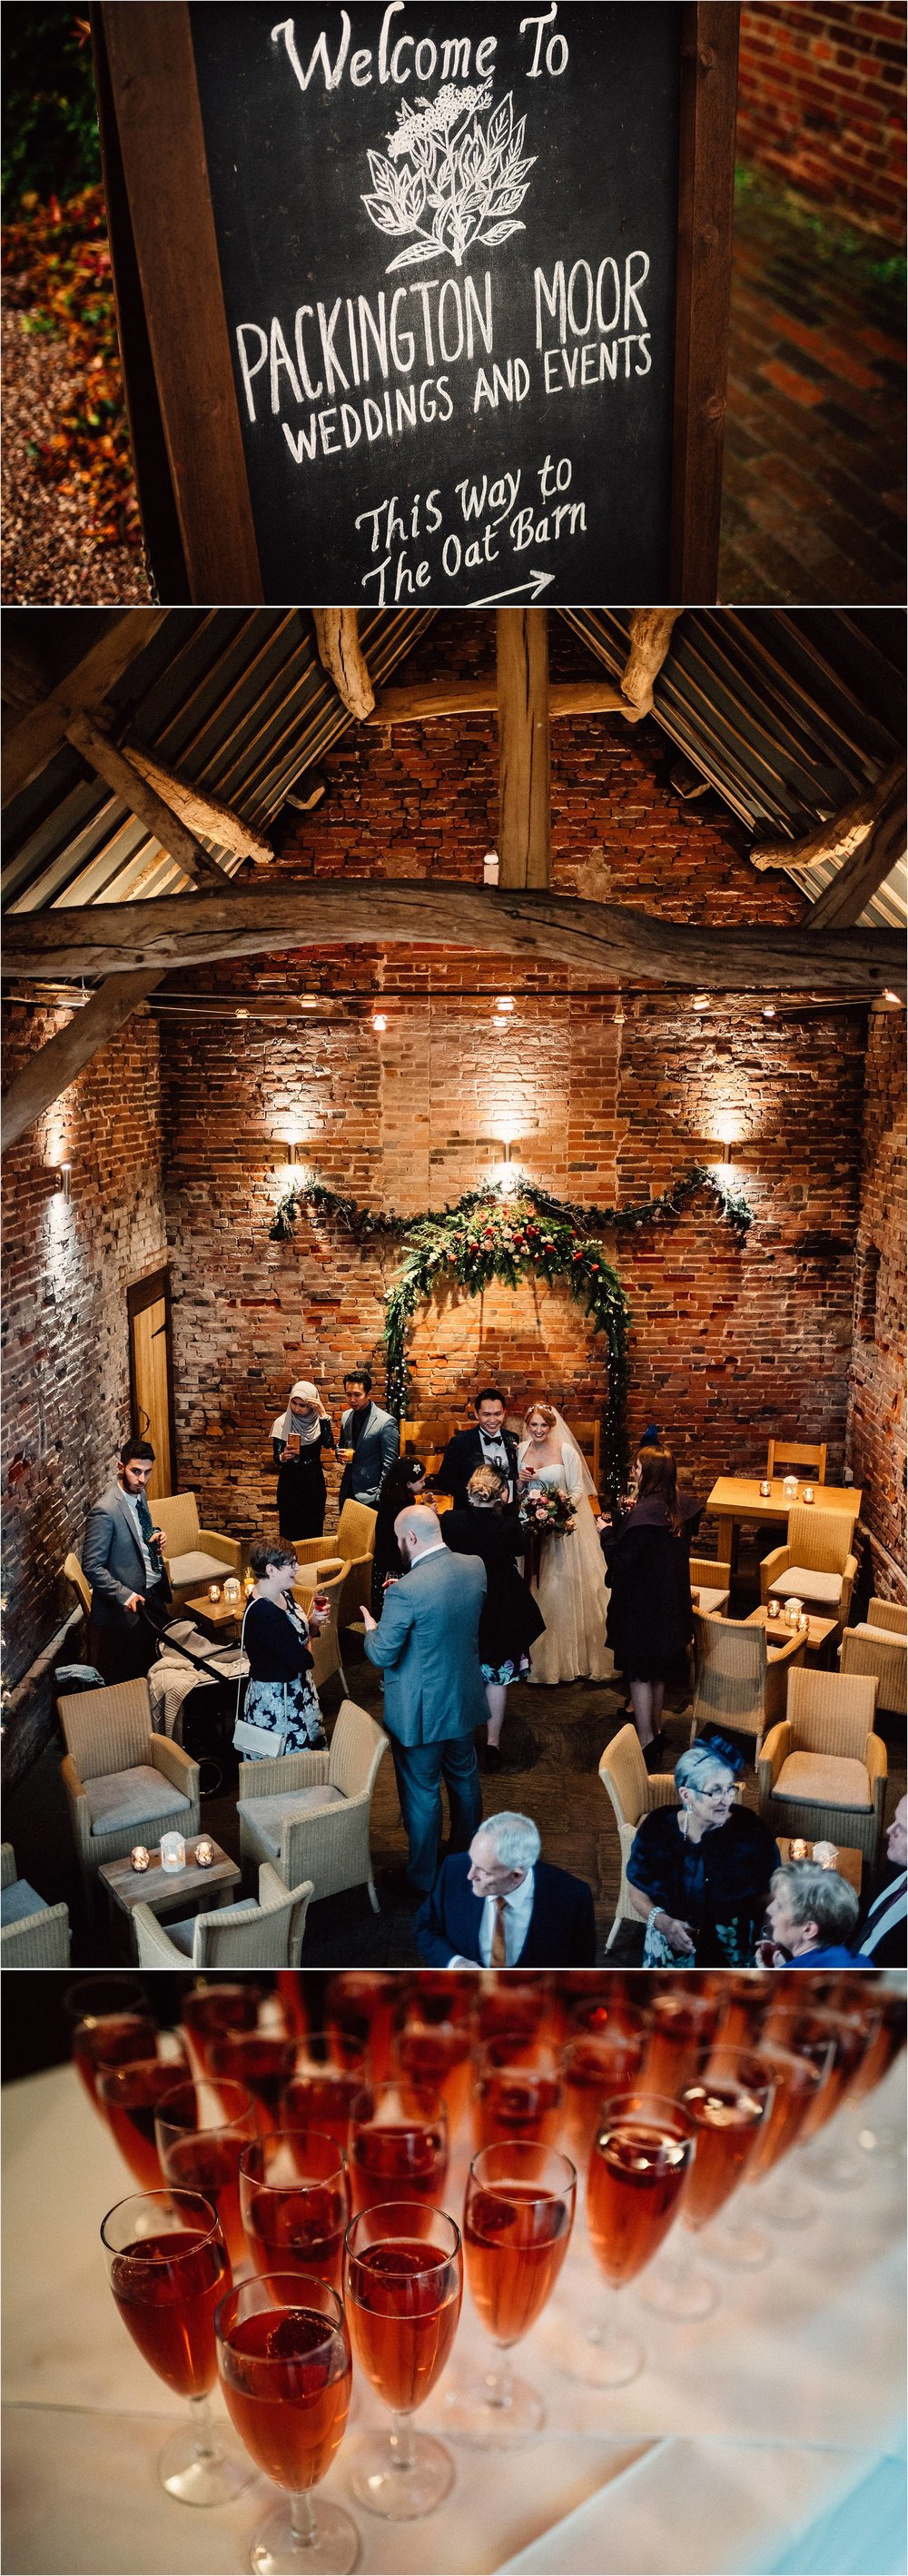 Birmingham Wedding Photographer_0053.jpg